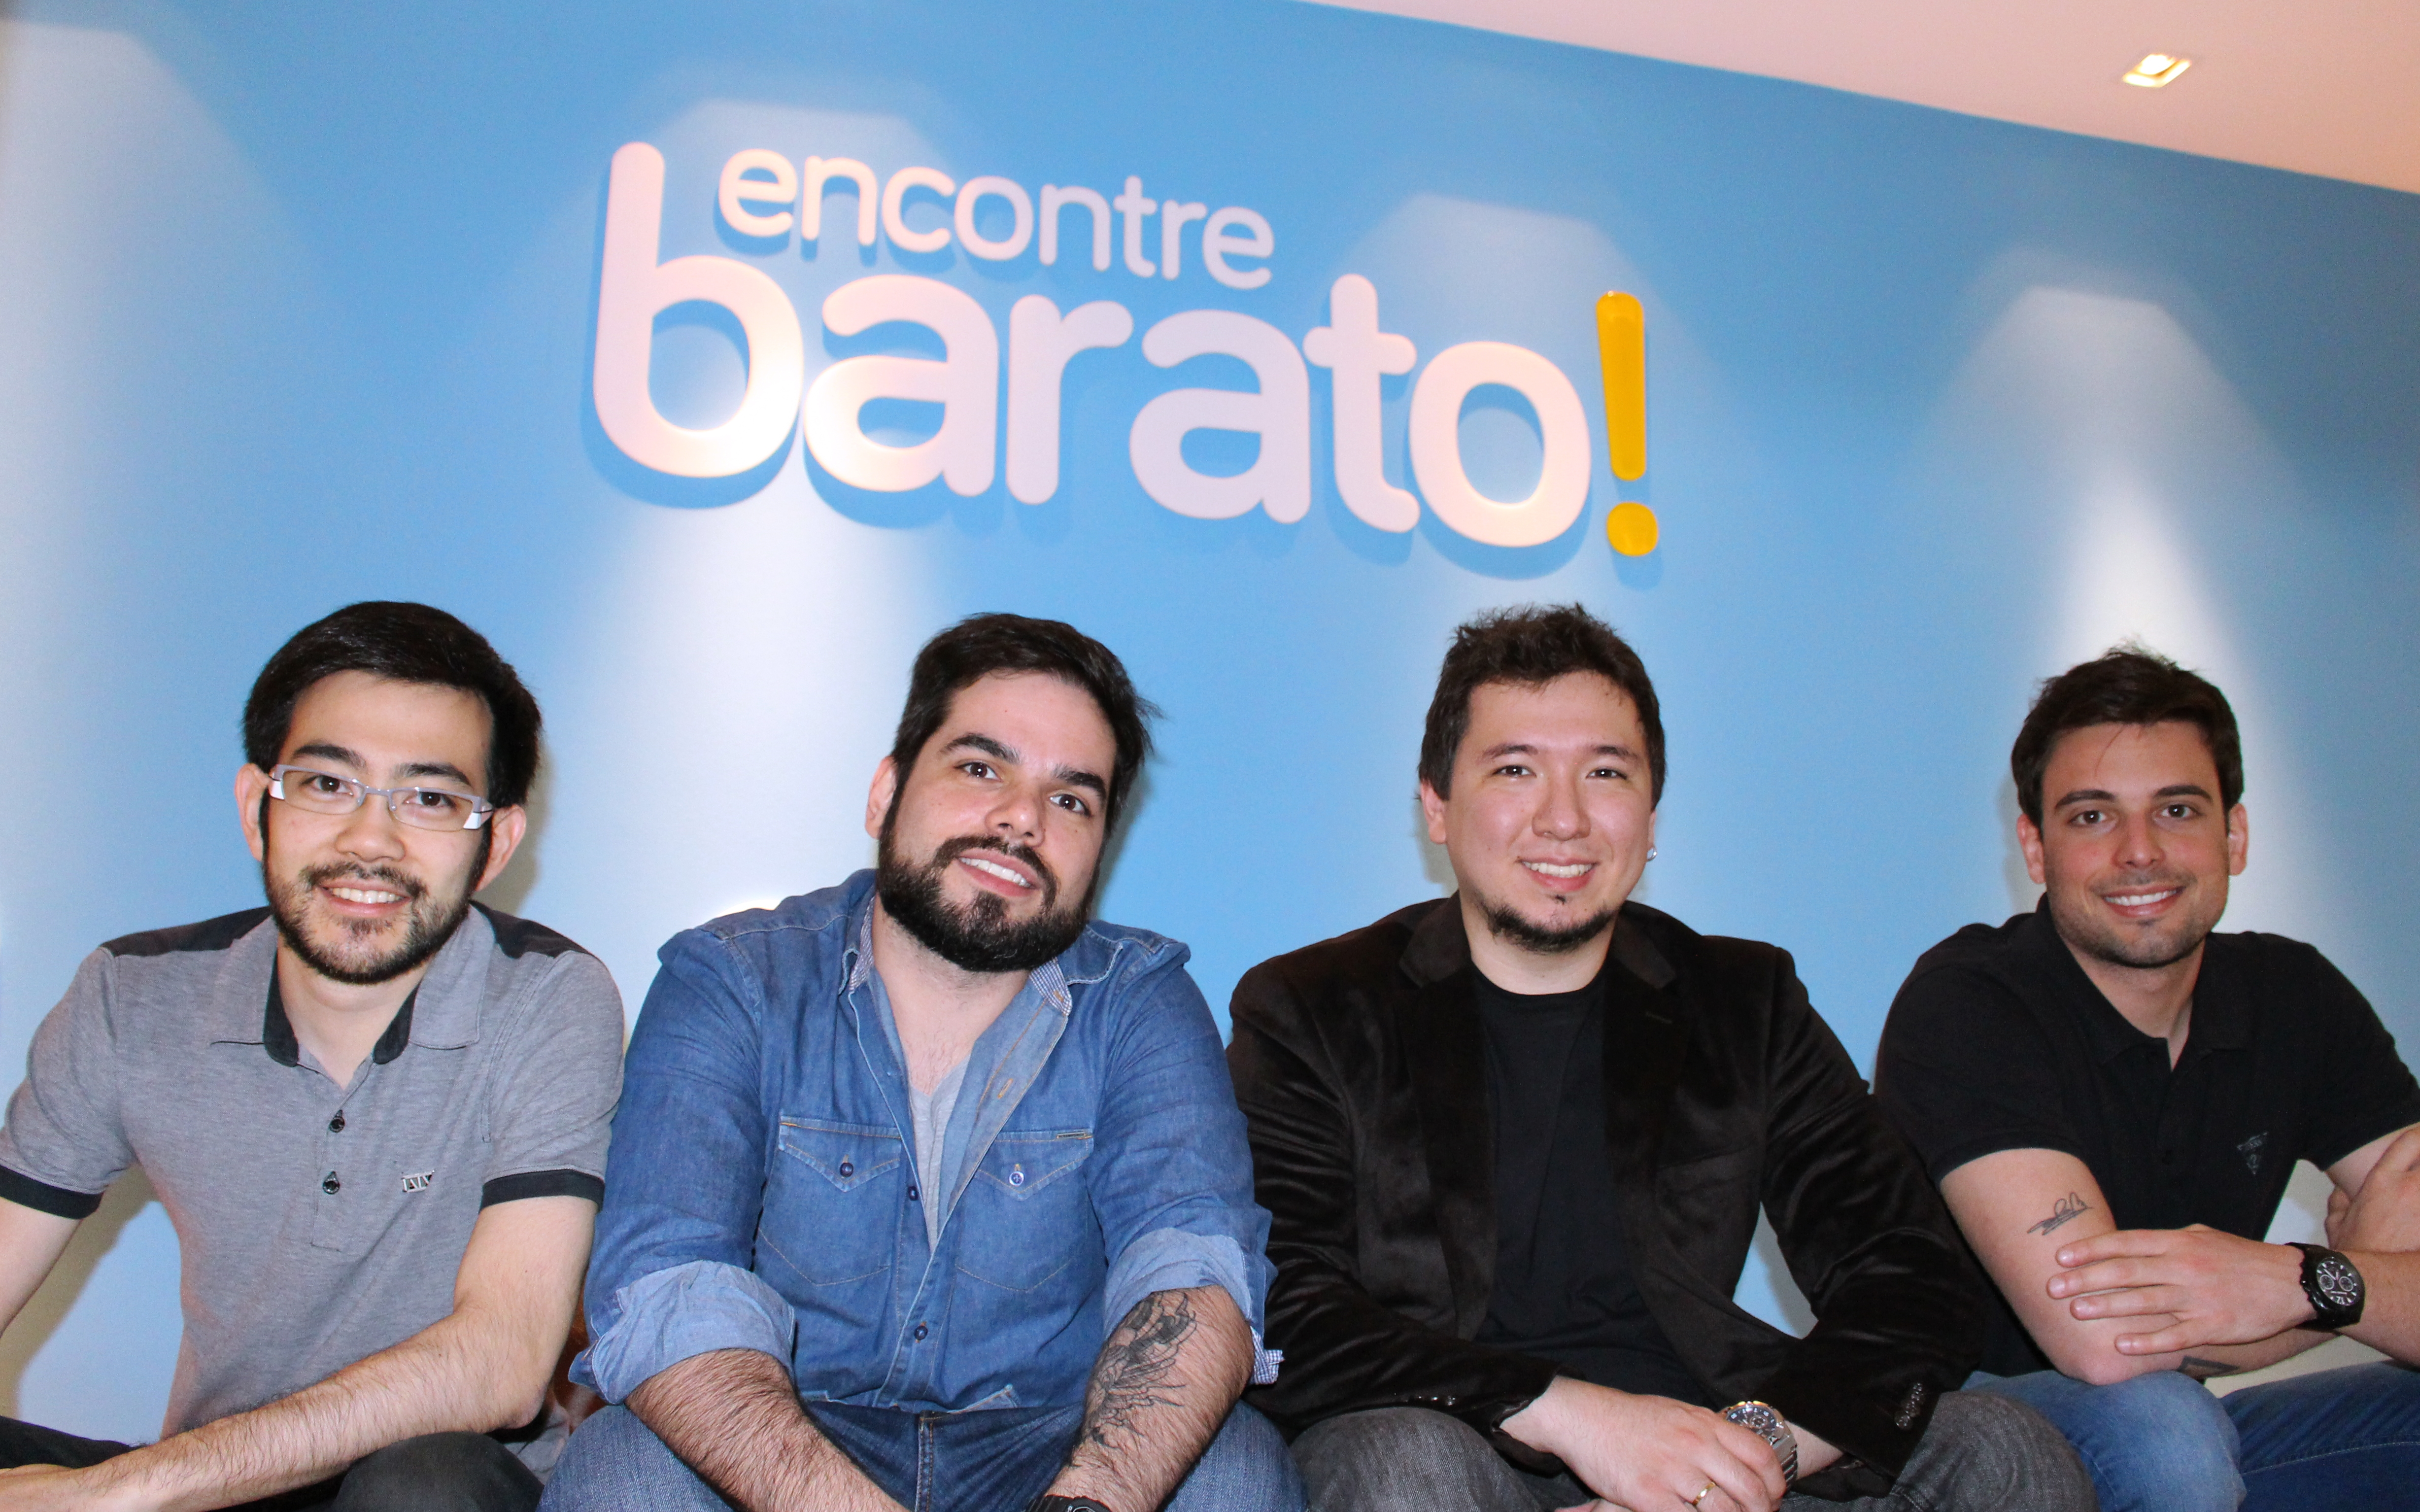 Encontre Barato